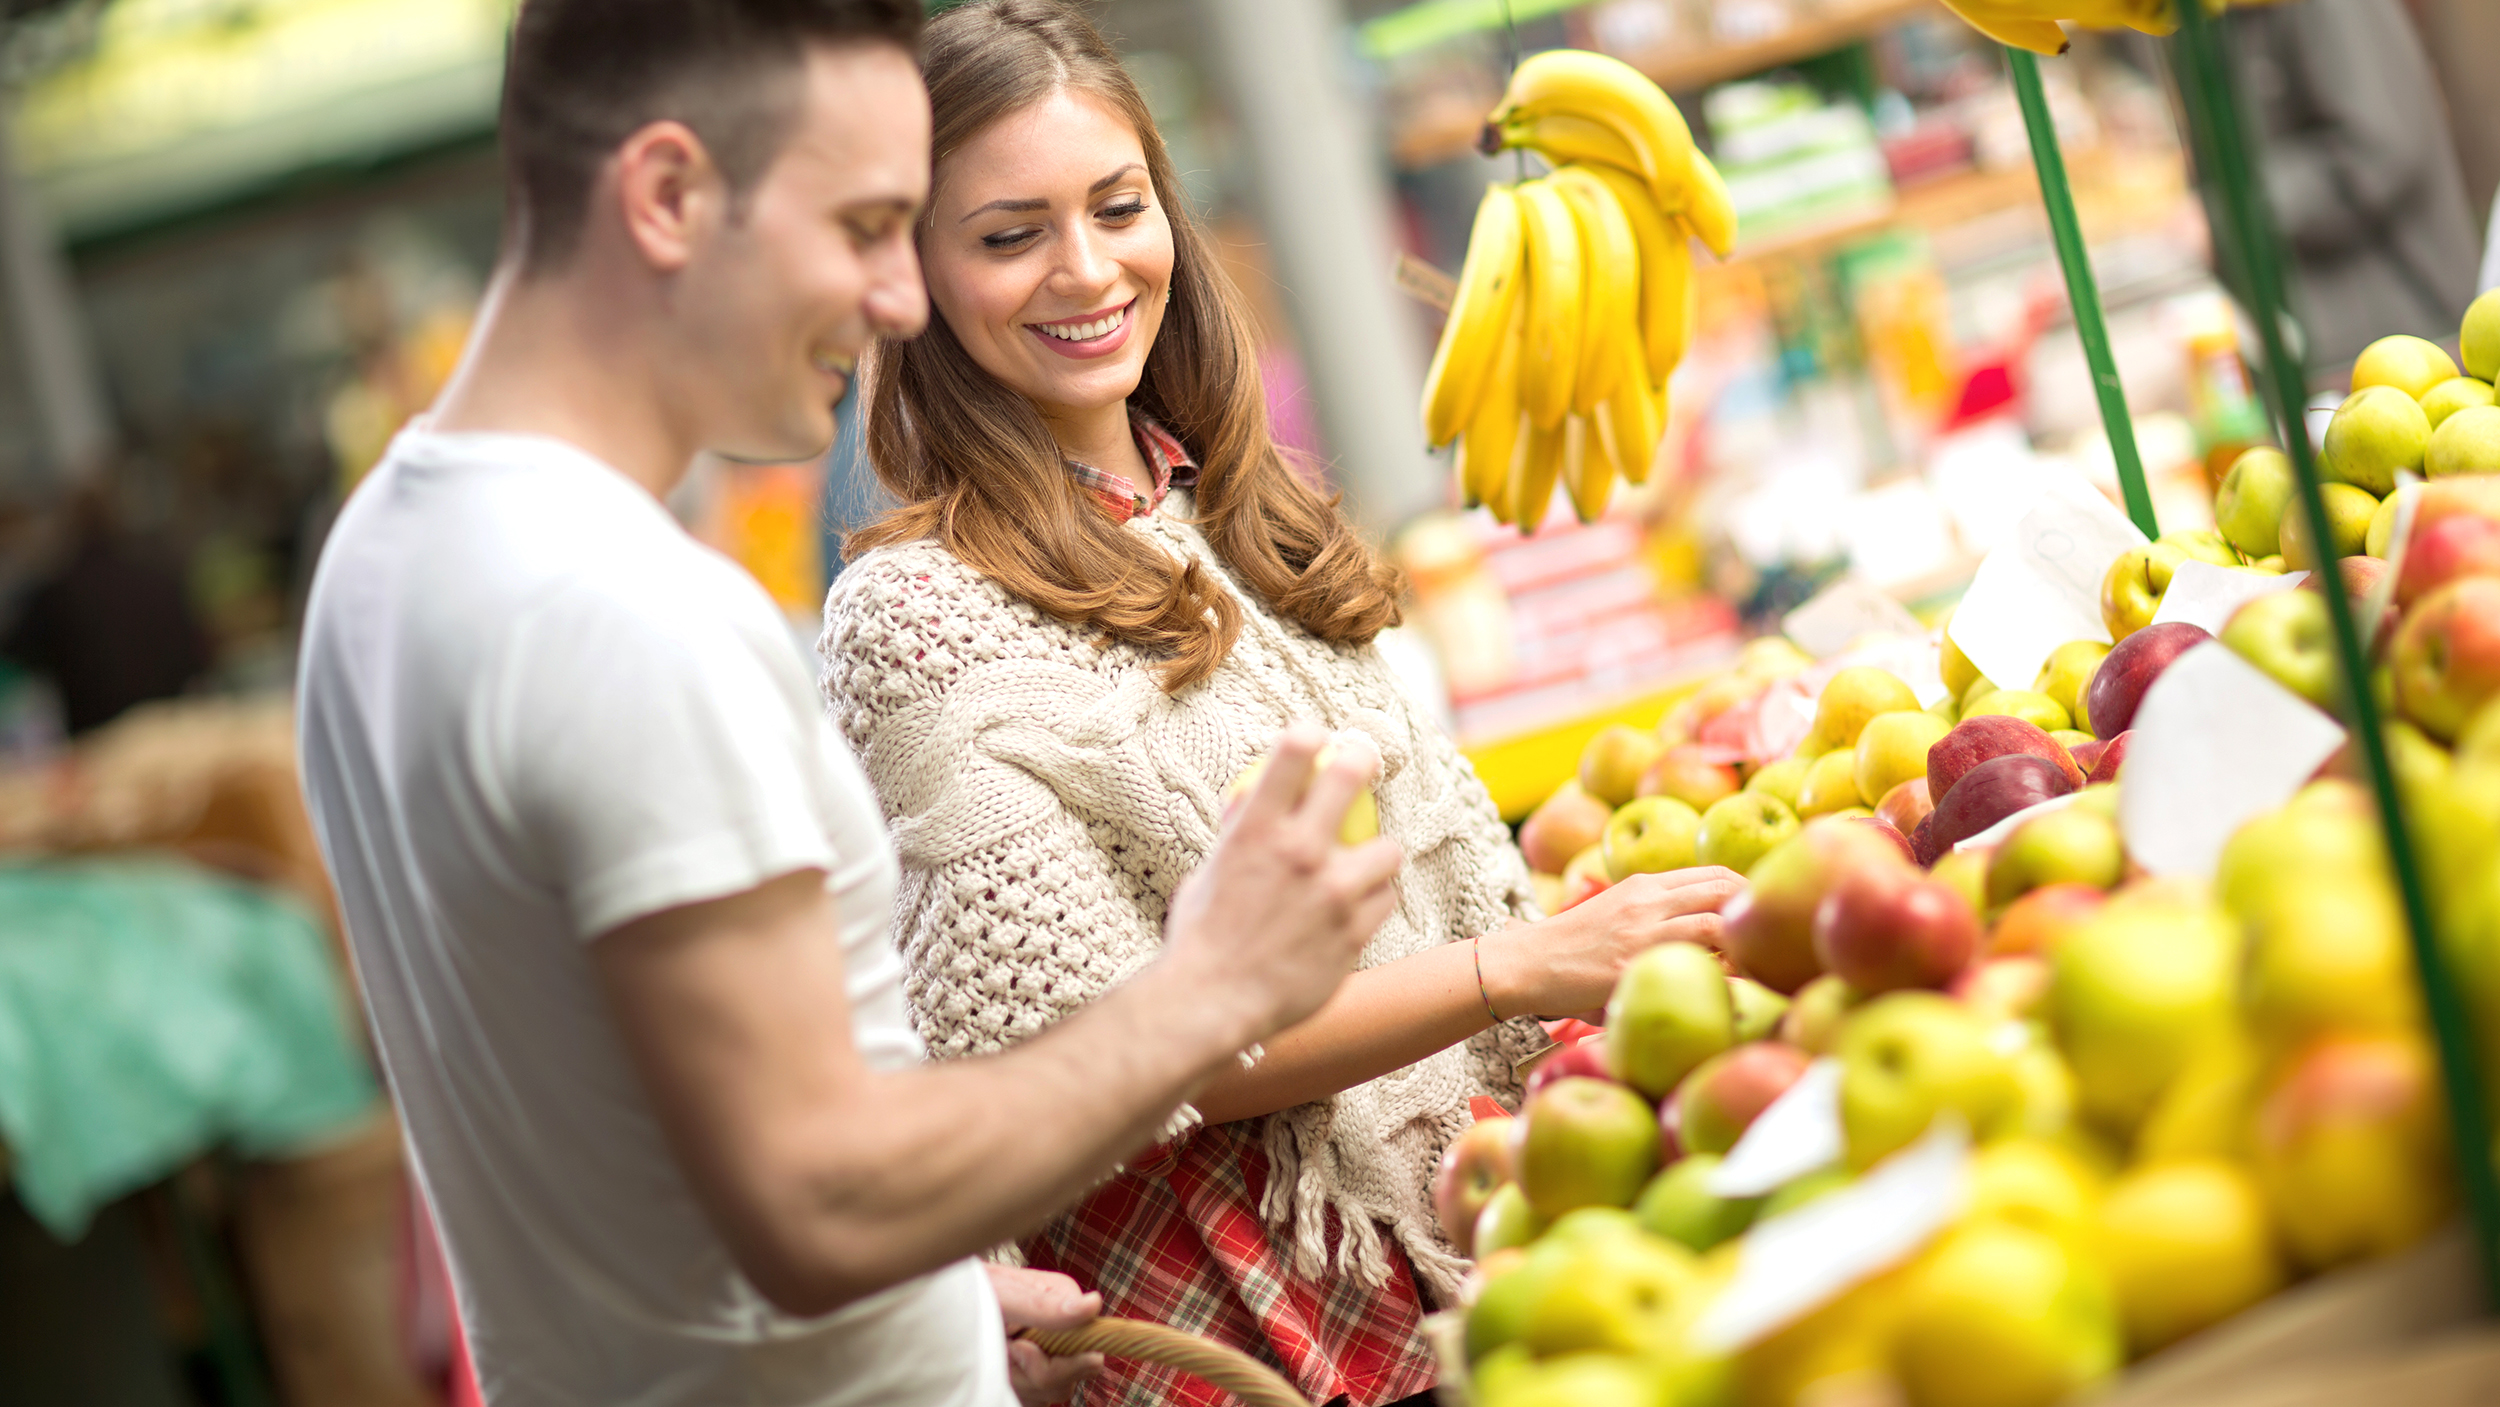 Want to find love? Go grocery shopping. - TODAY.com